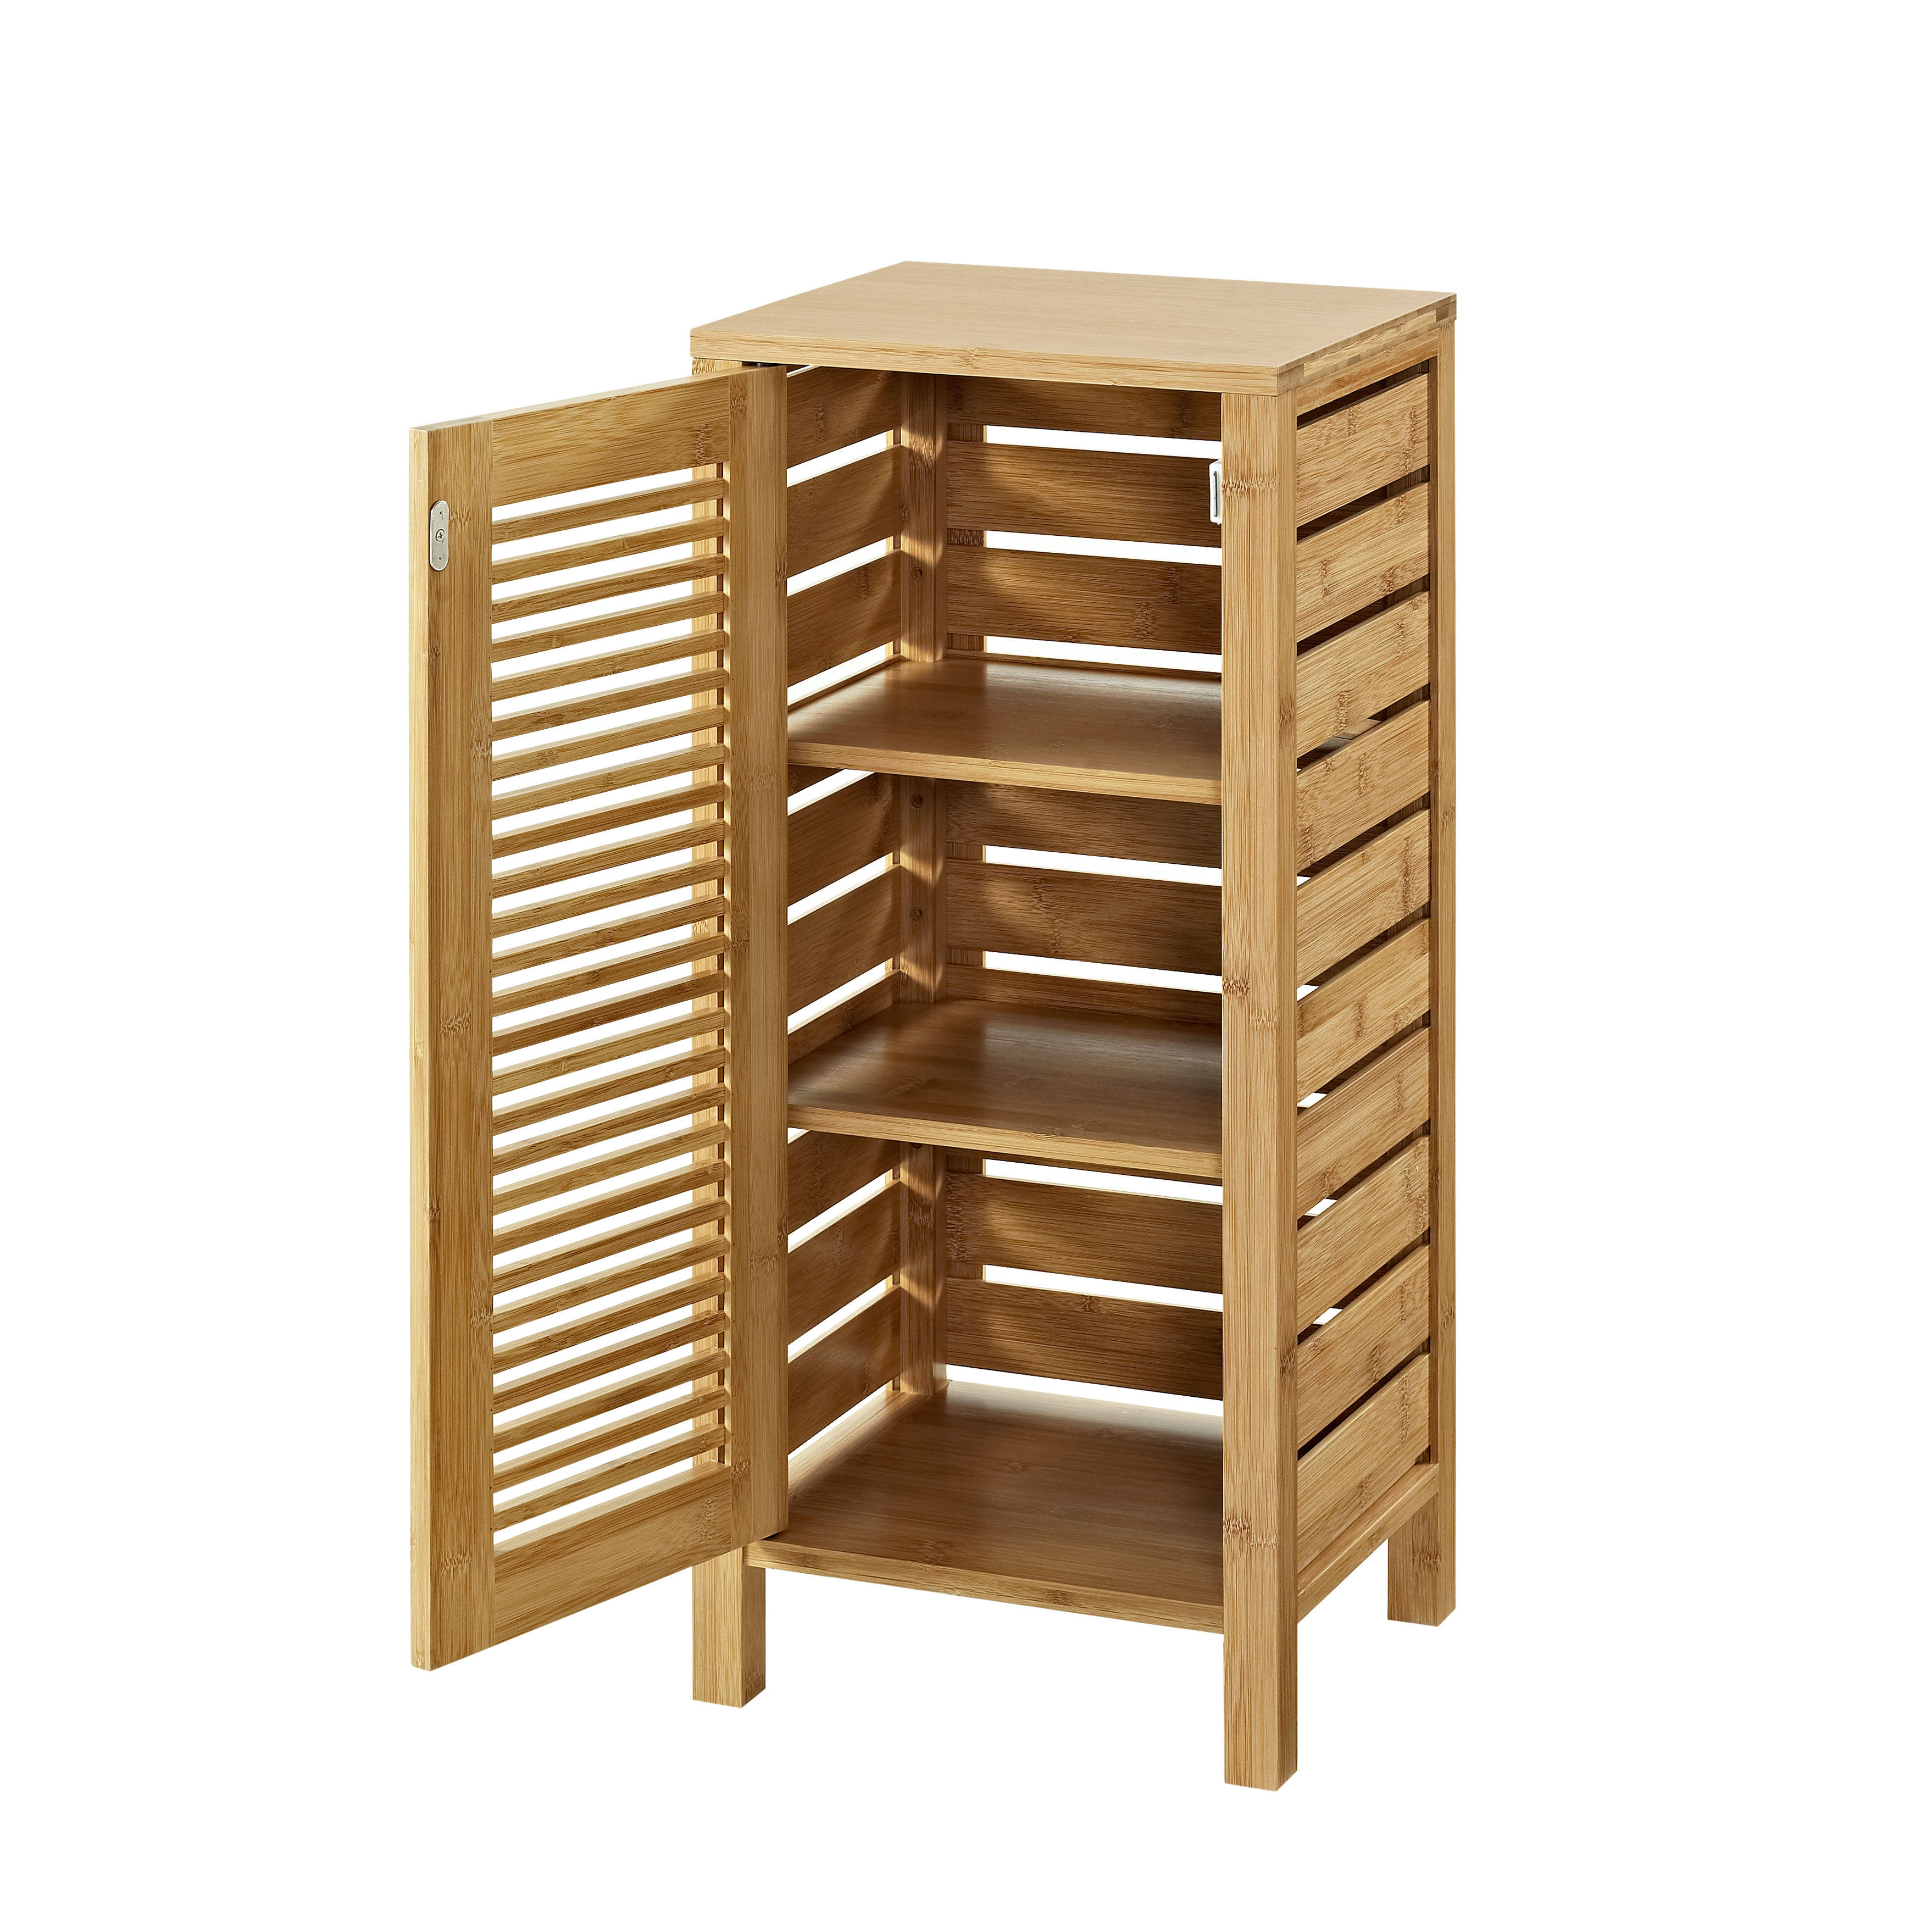 Linon Bracken Natural Bamboo One Door Floor Cabinet | The Classy Home